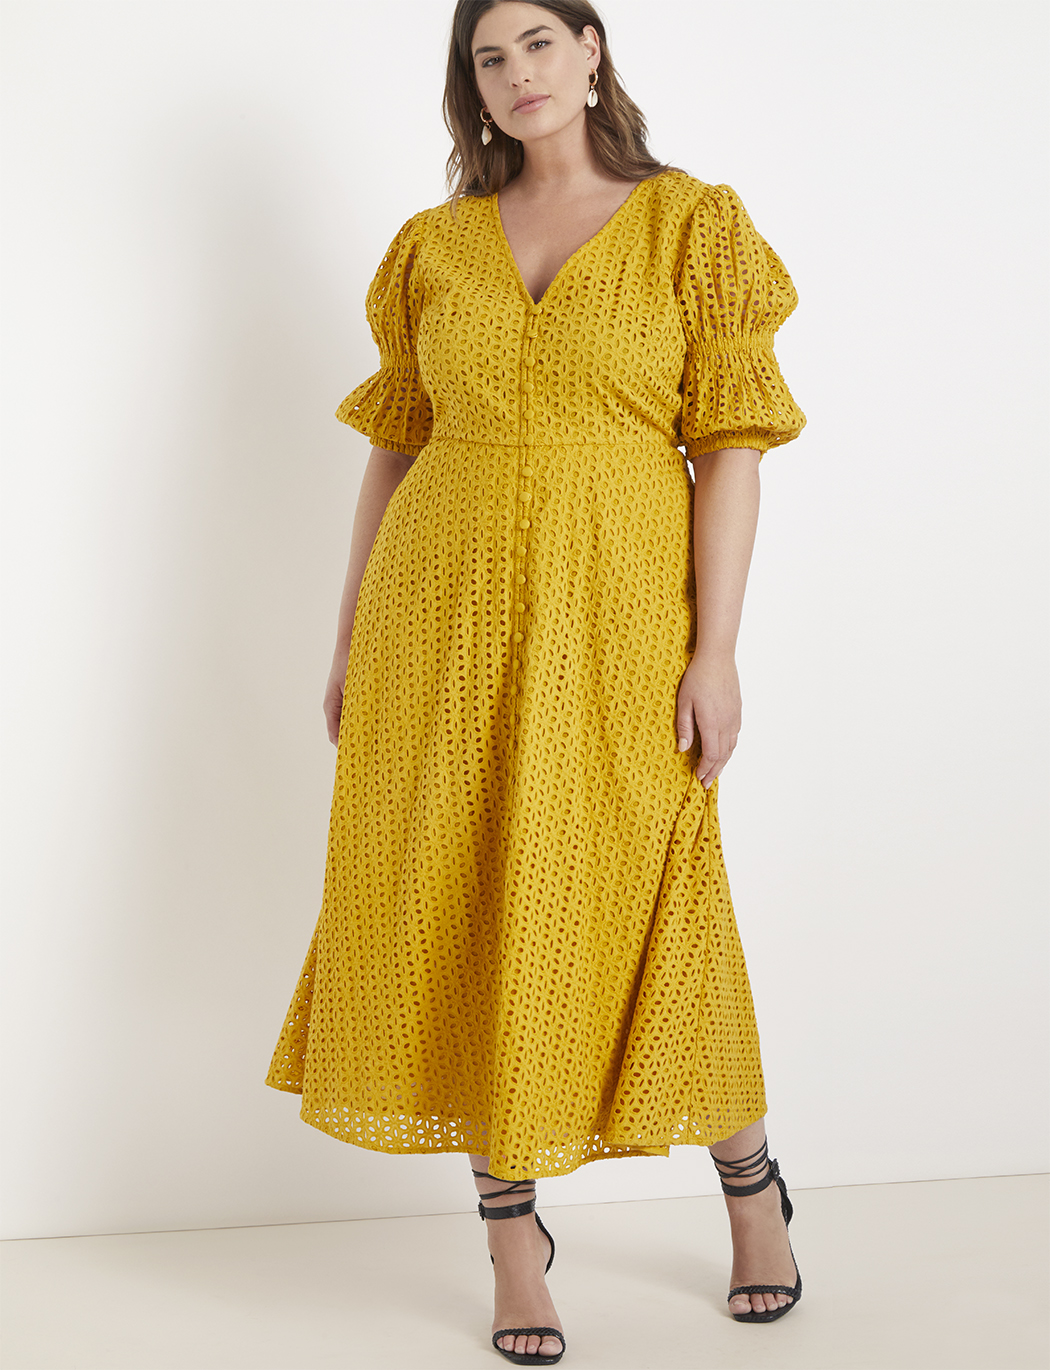 Eyelet Dress with Puff Sleeves | Women\'s Plus Size Dresses | ELOQUII